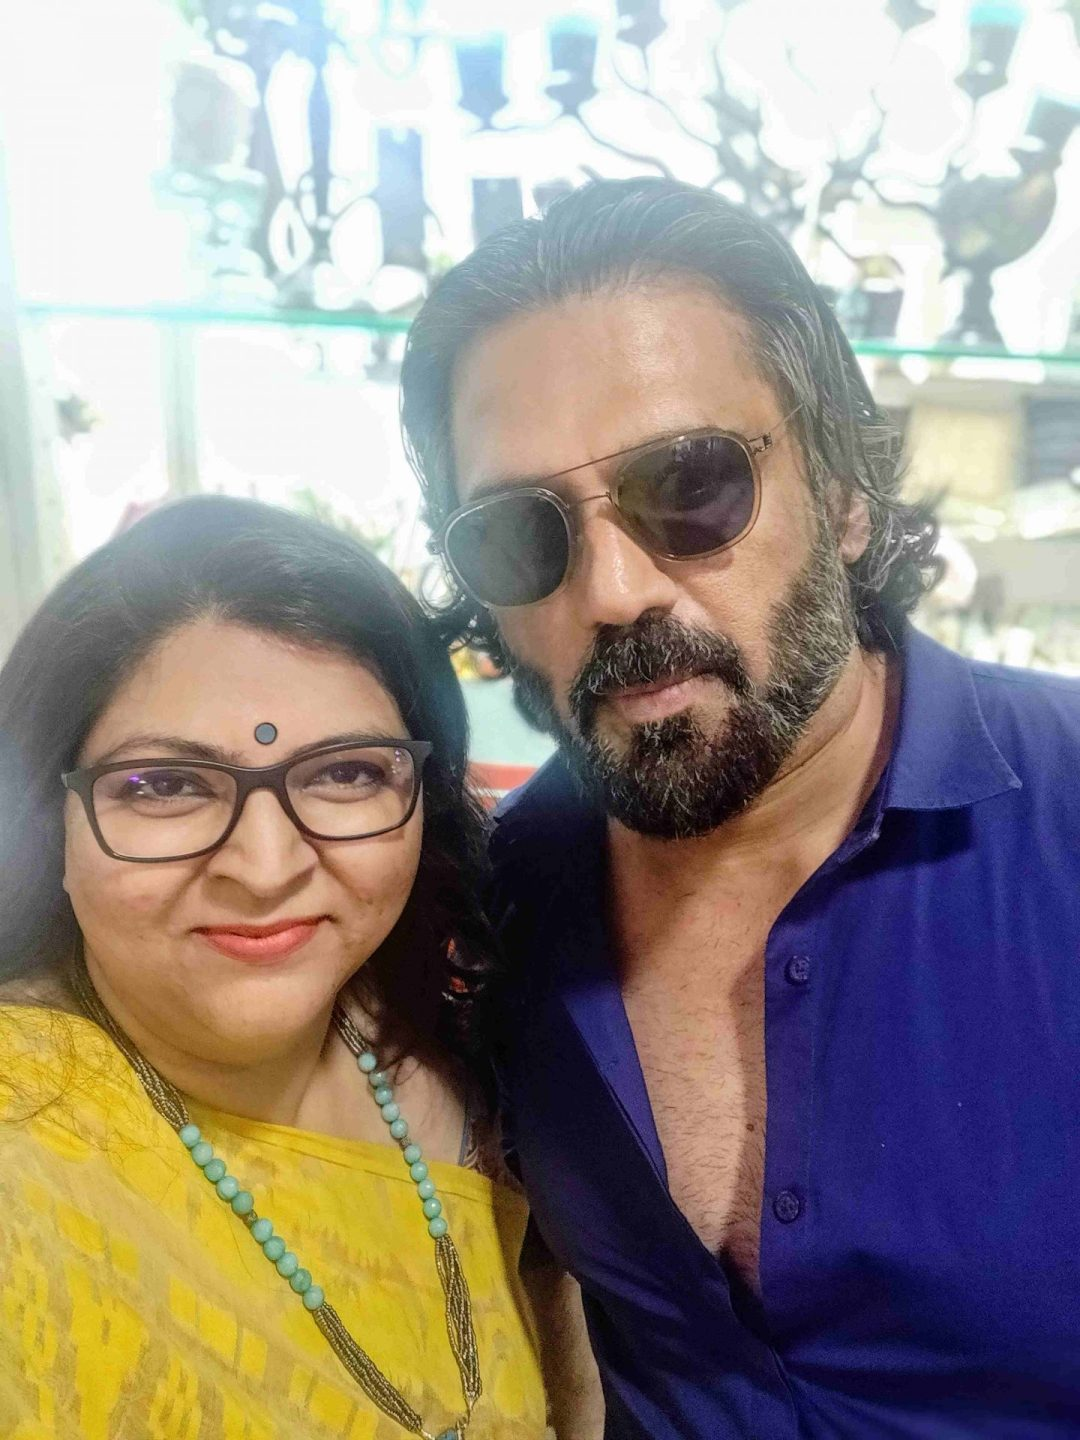 With Mr. Suniel Shetty